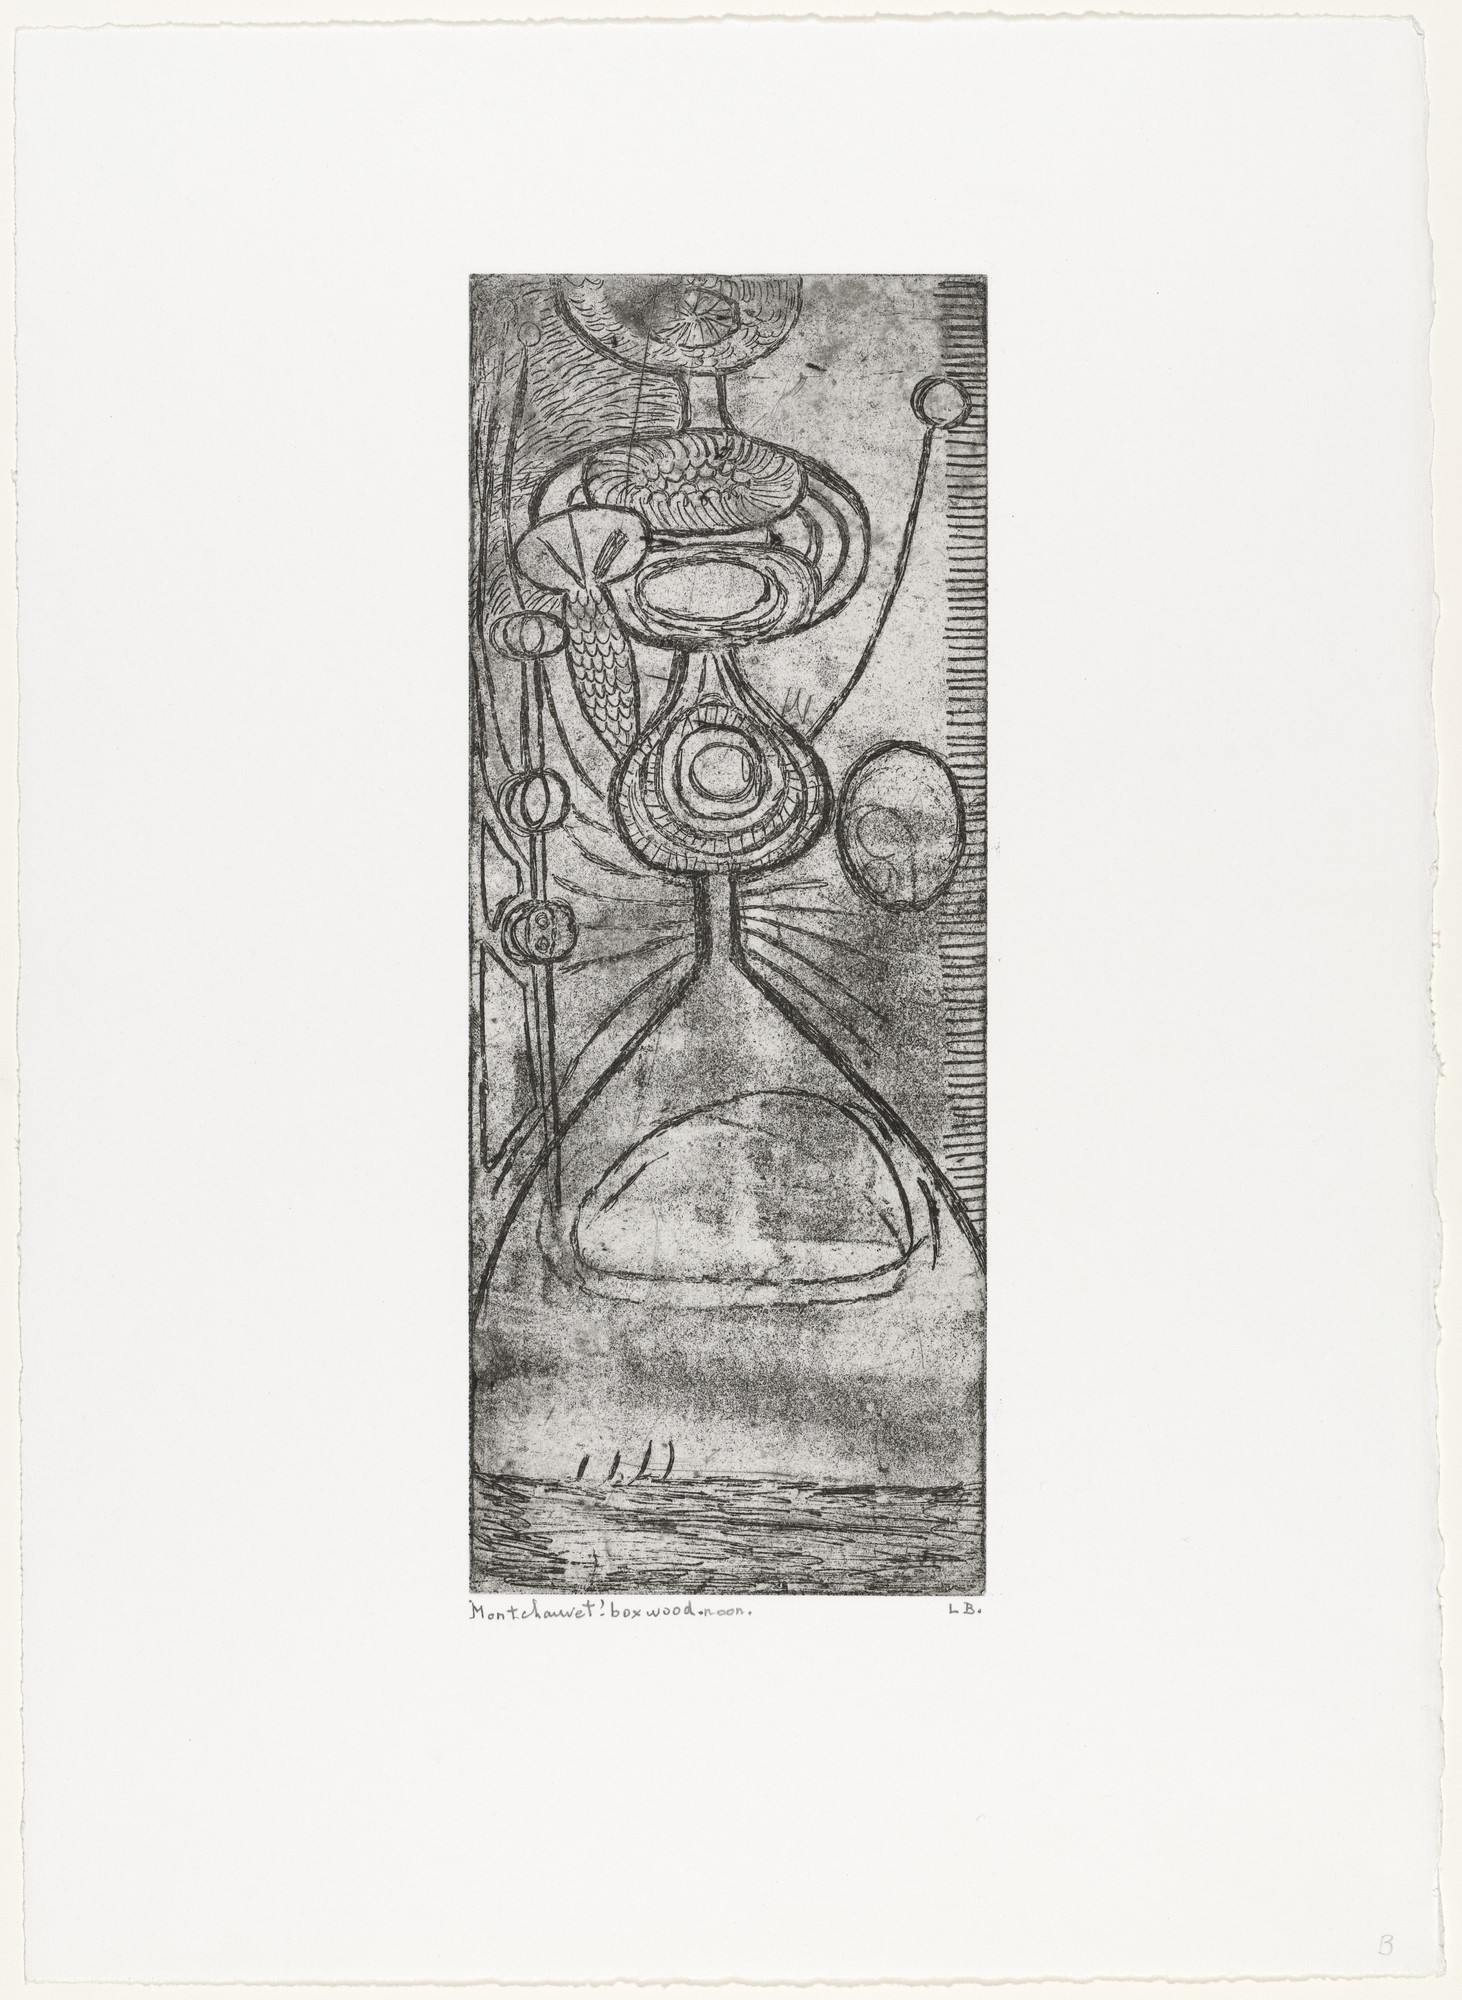 Louise Bourgeois. Boxwood Noon. c. 1945, reprinted 1990